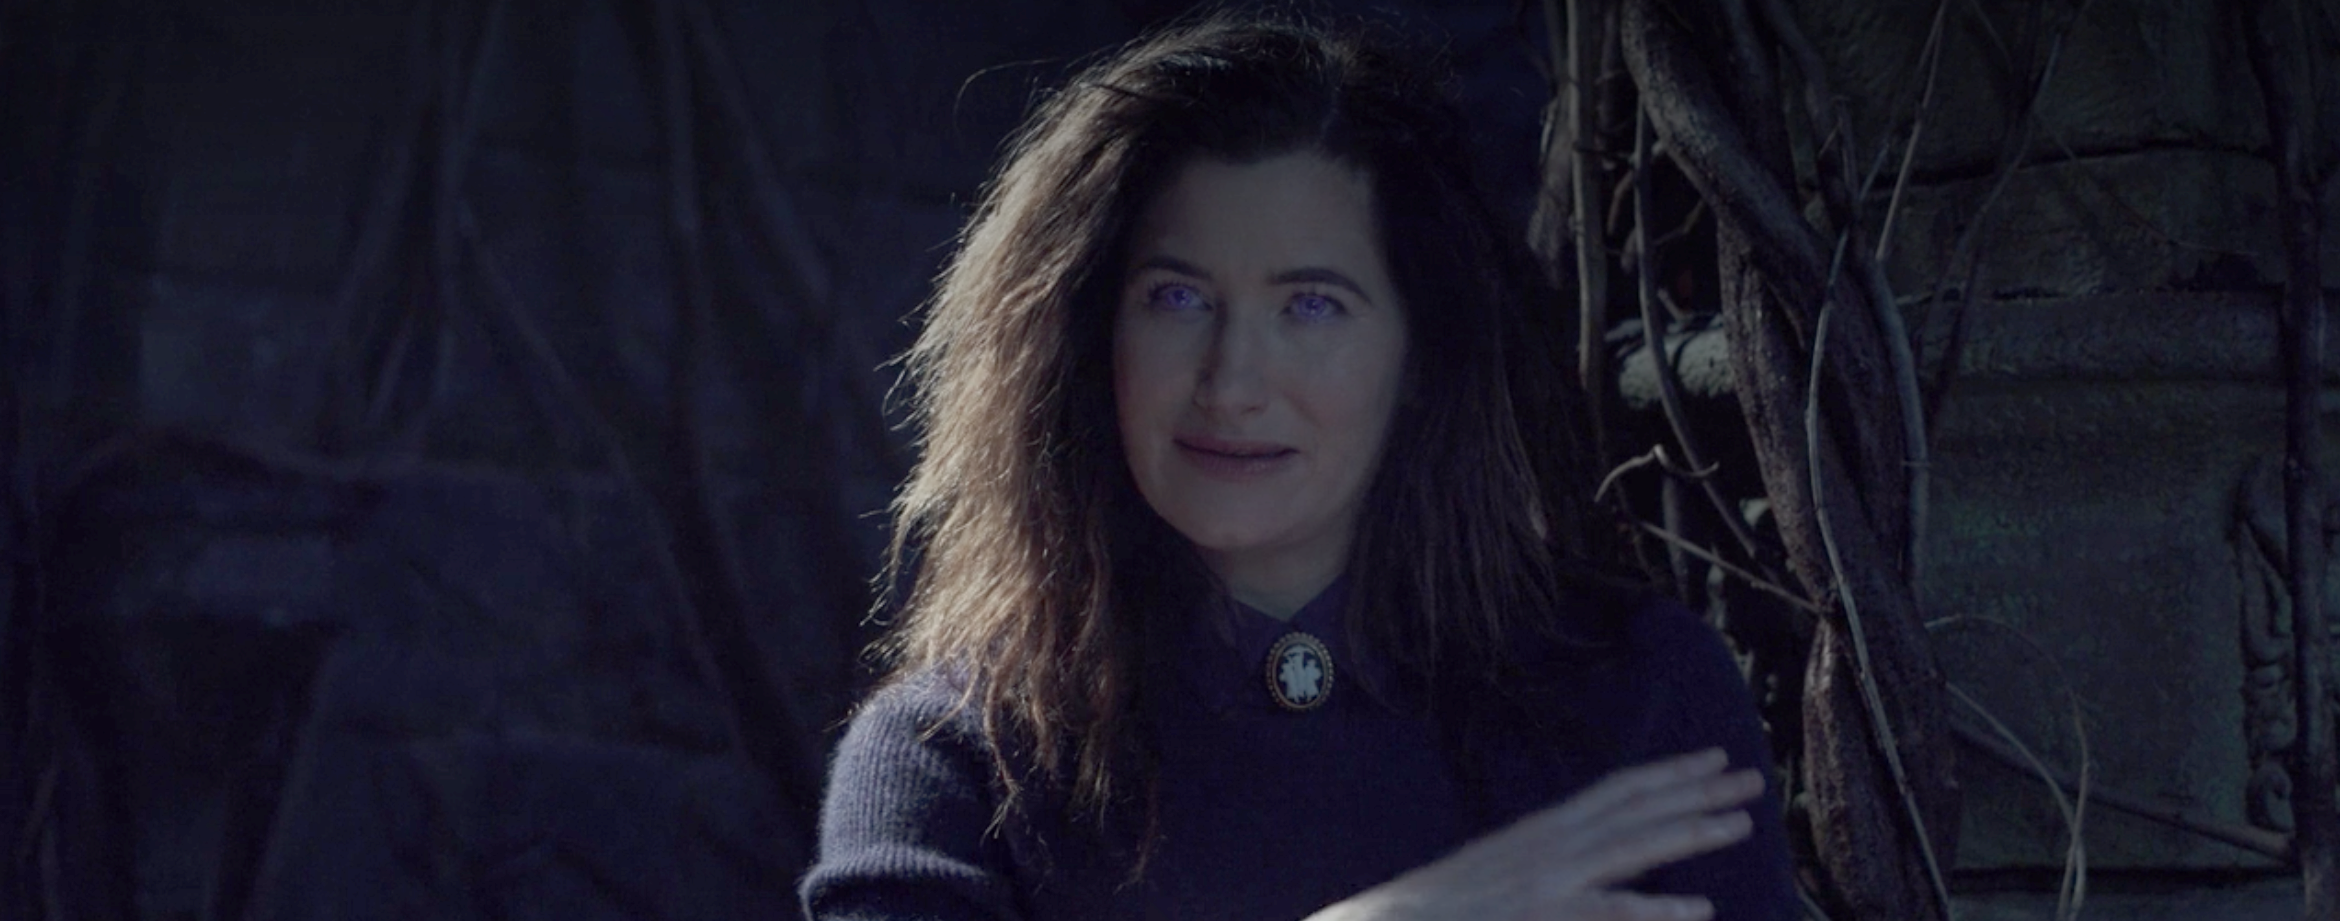 Agatha Harkness revealing herself with glowing eyes